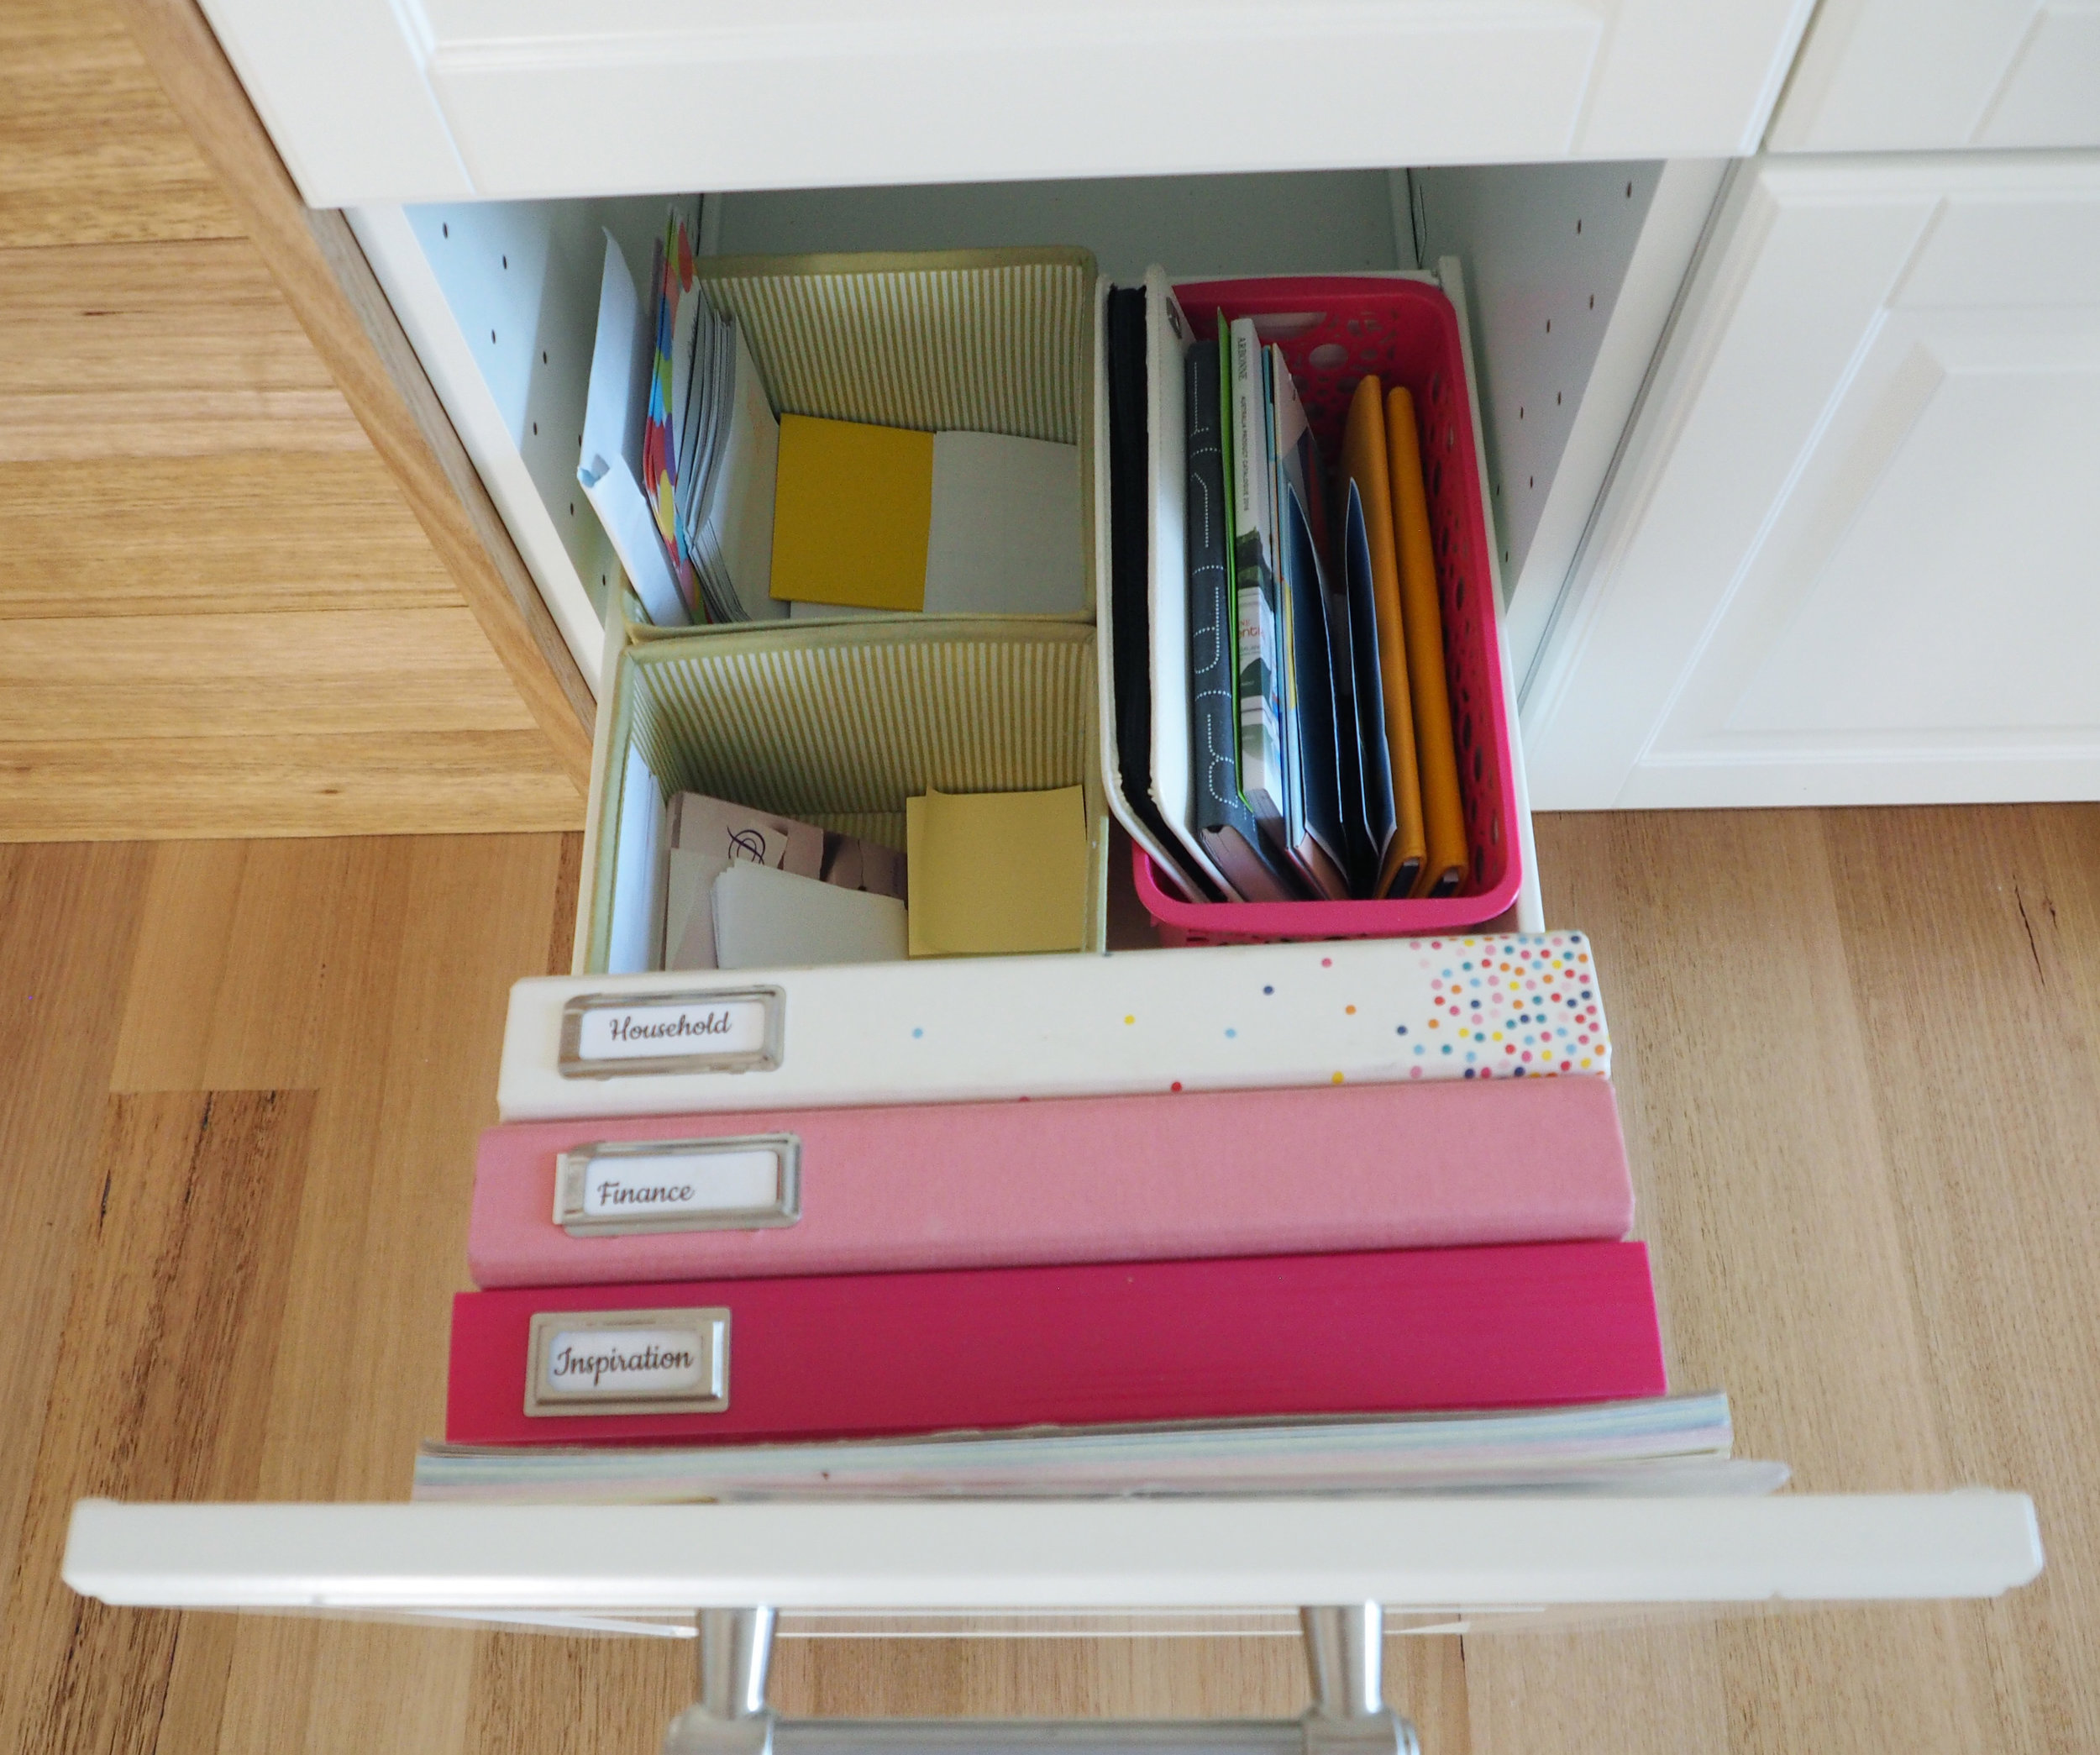 Household binders are the perfect way to keep track of important household information